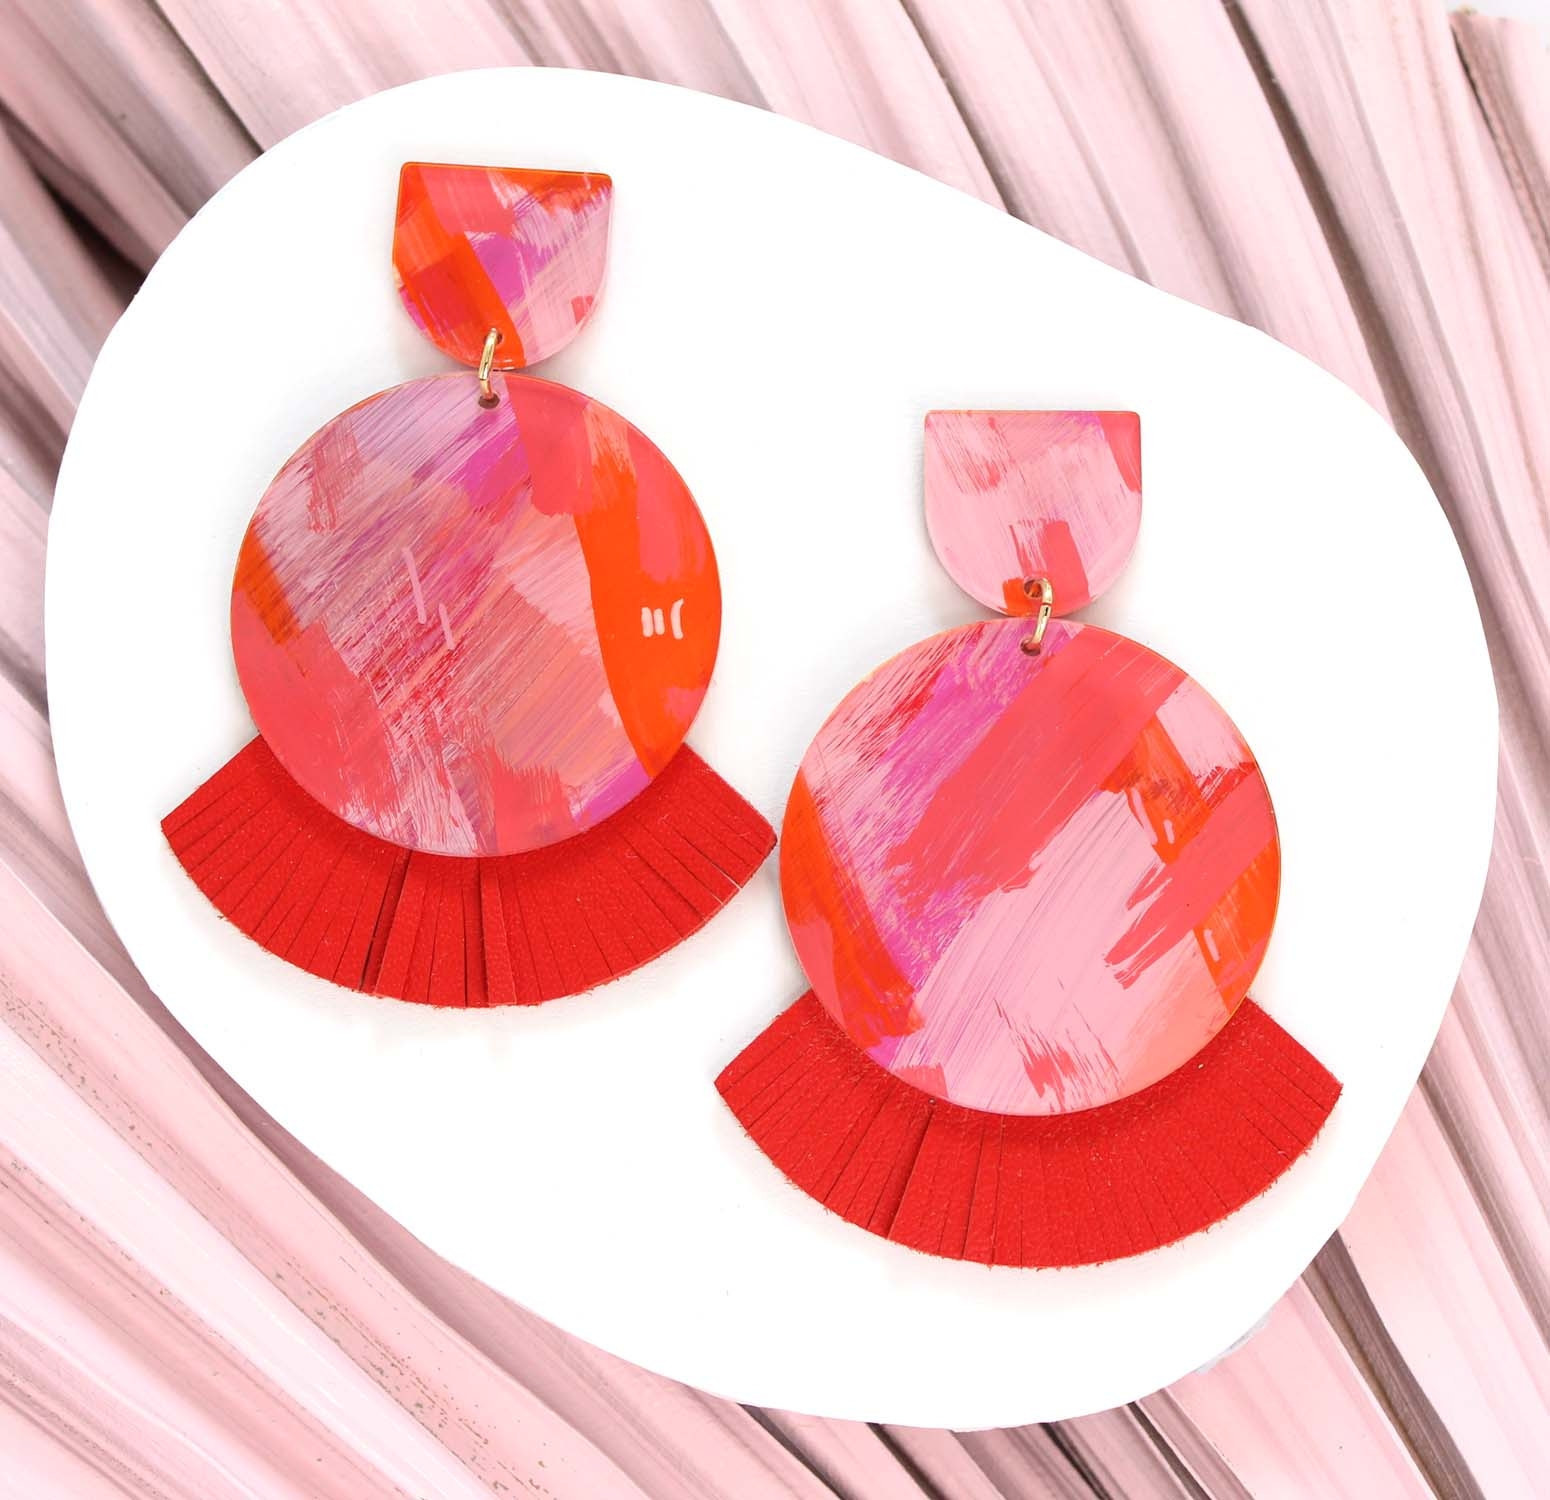 Lunar (Large Size) - Summer – Red Leather Statement Earrings, hand painted